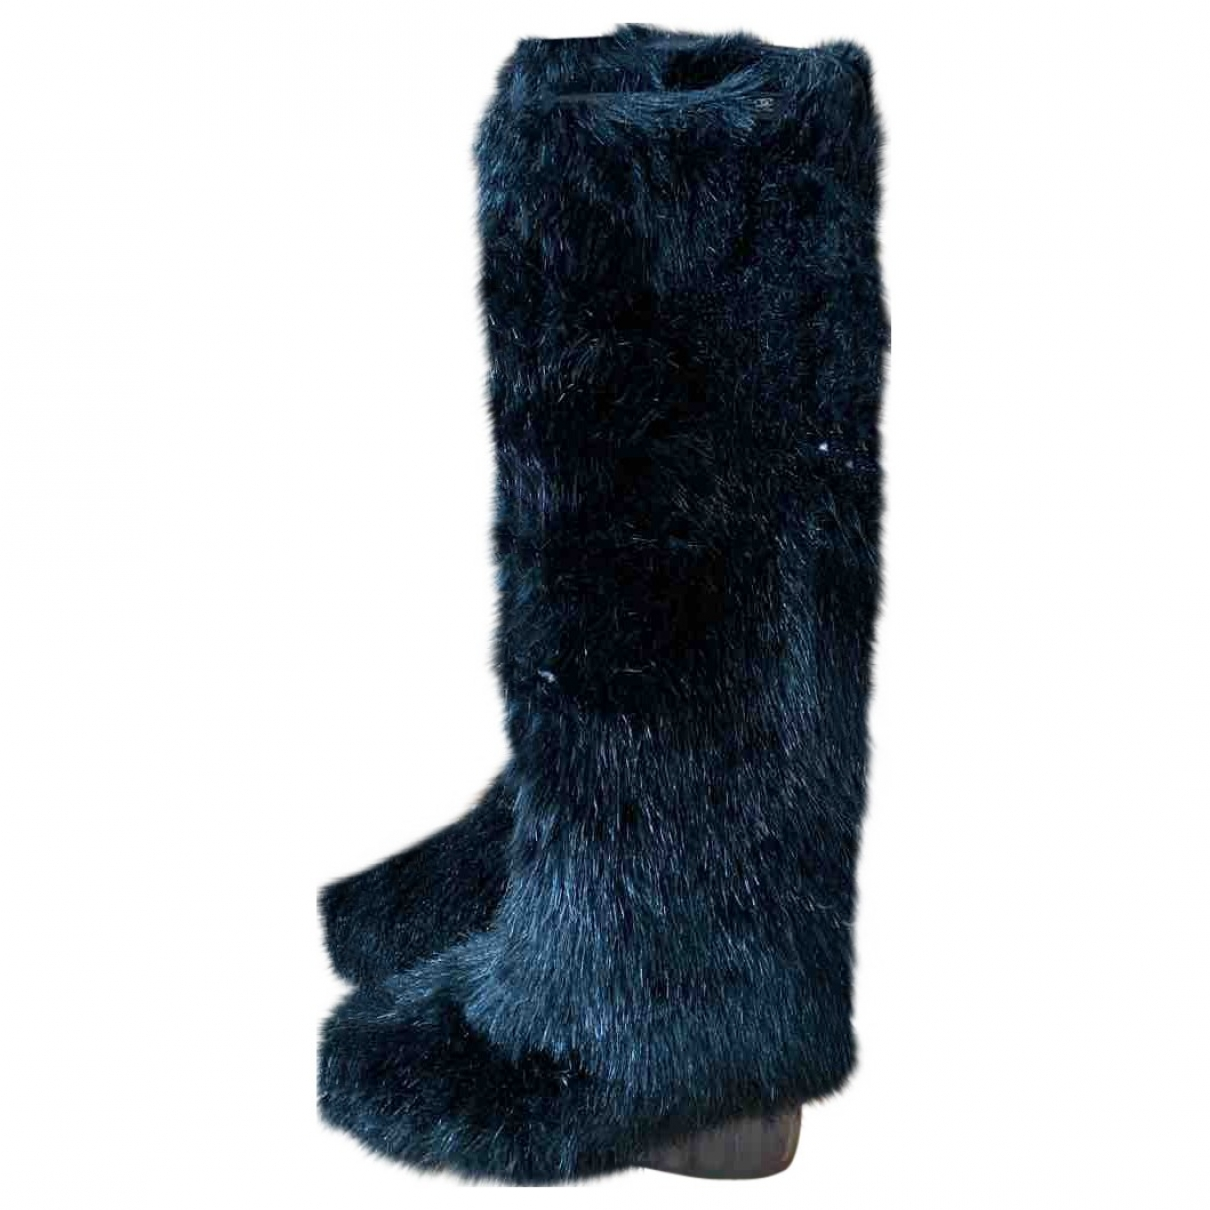 Chanel \N Black Faux fur Boots for Women 38 EU